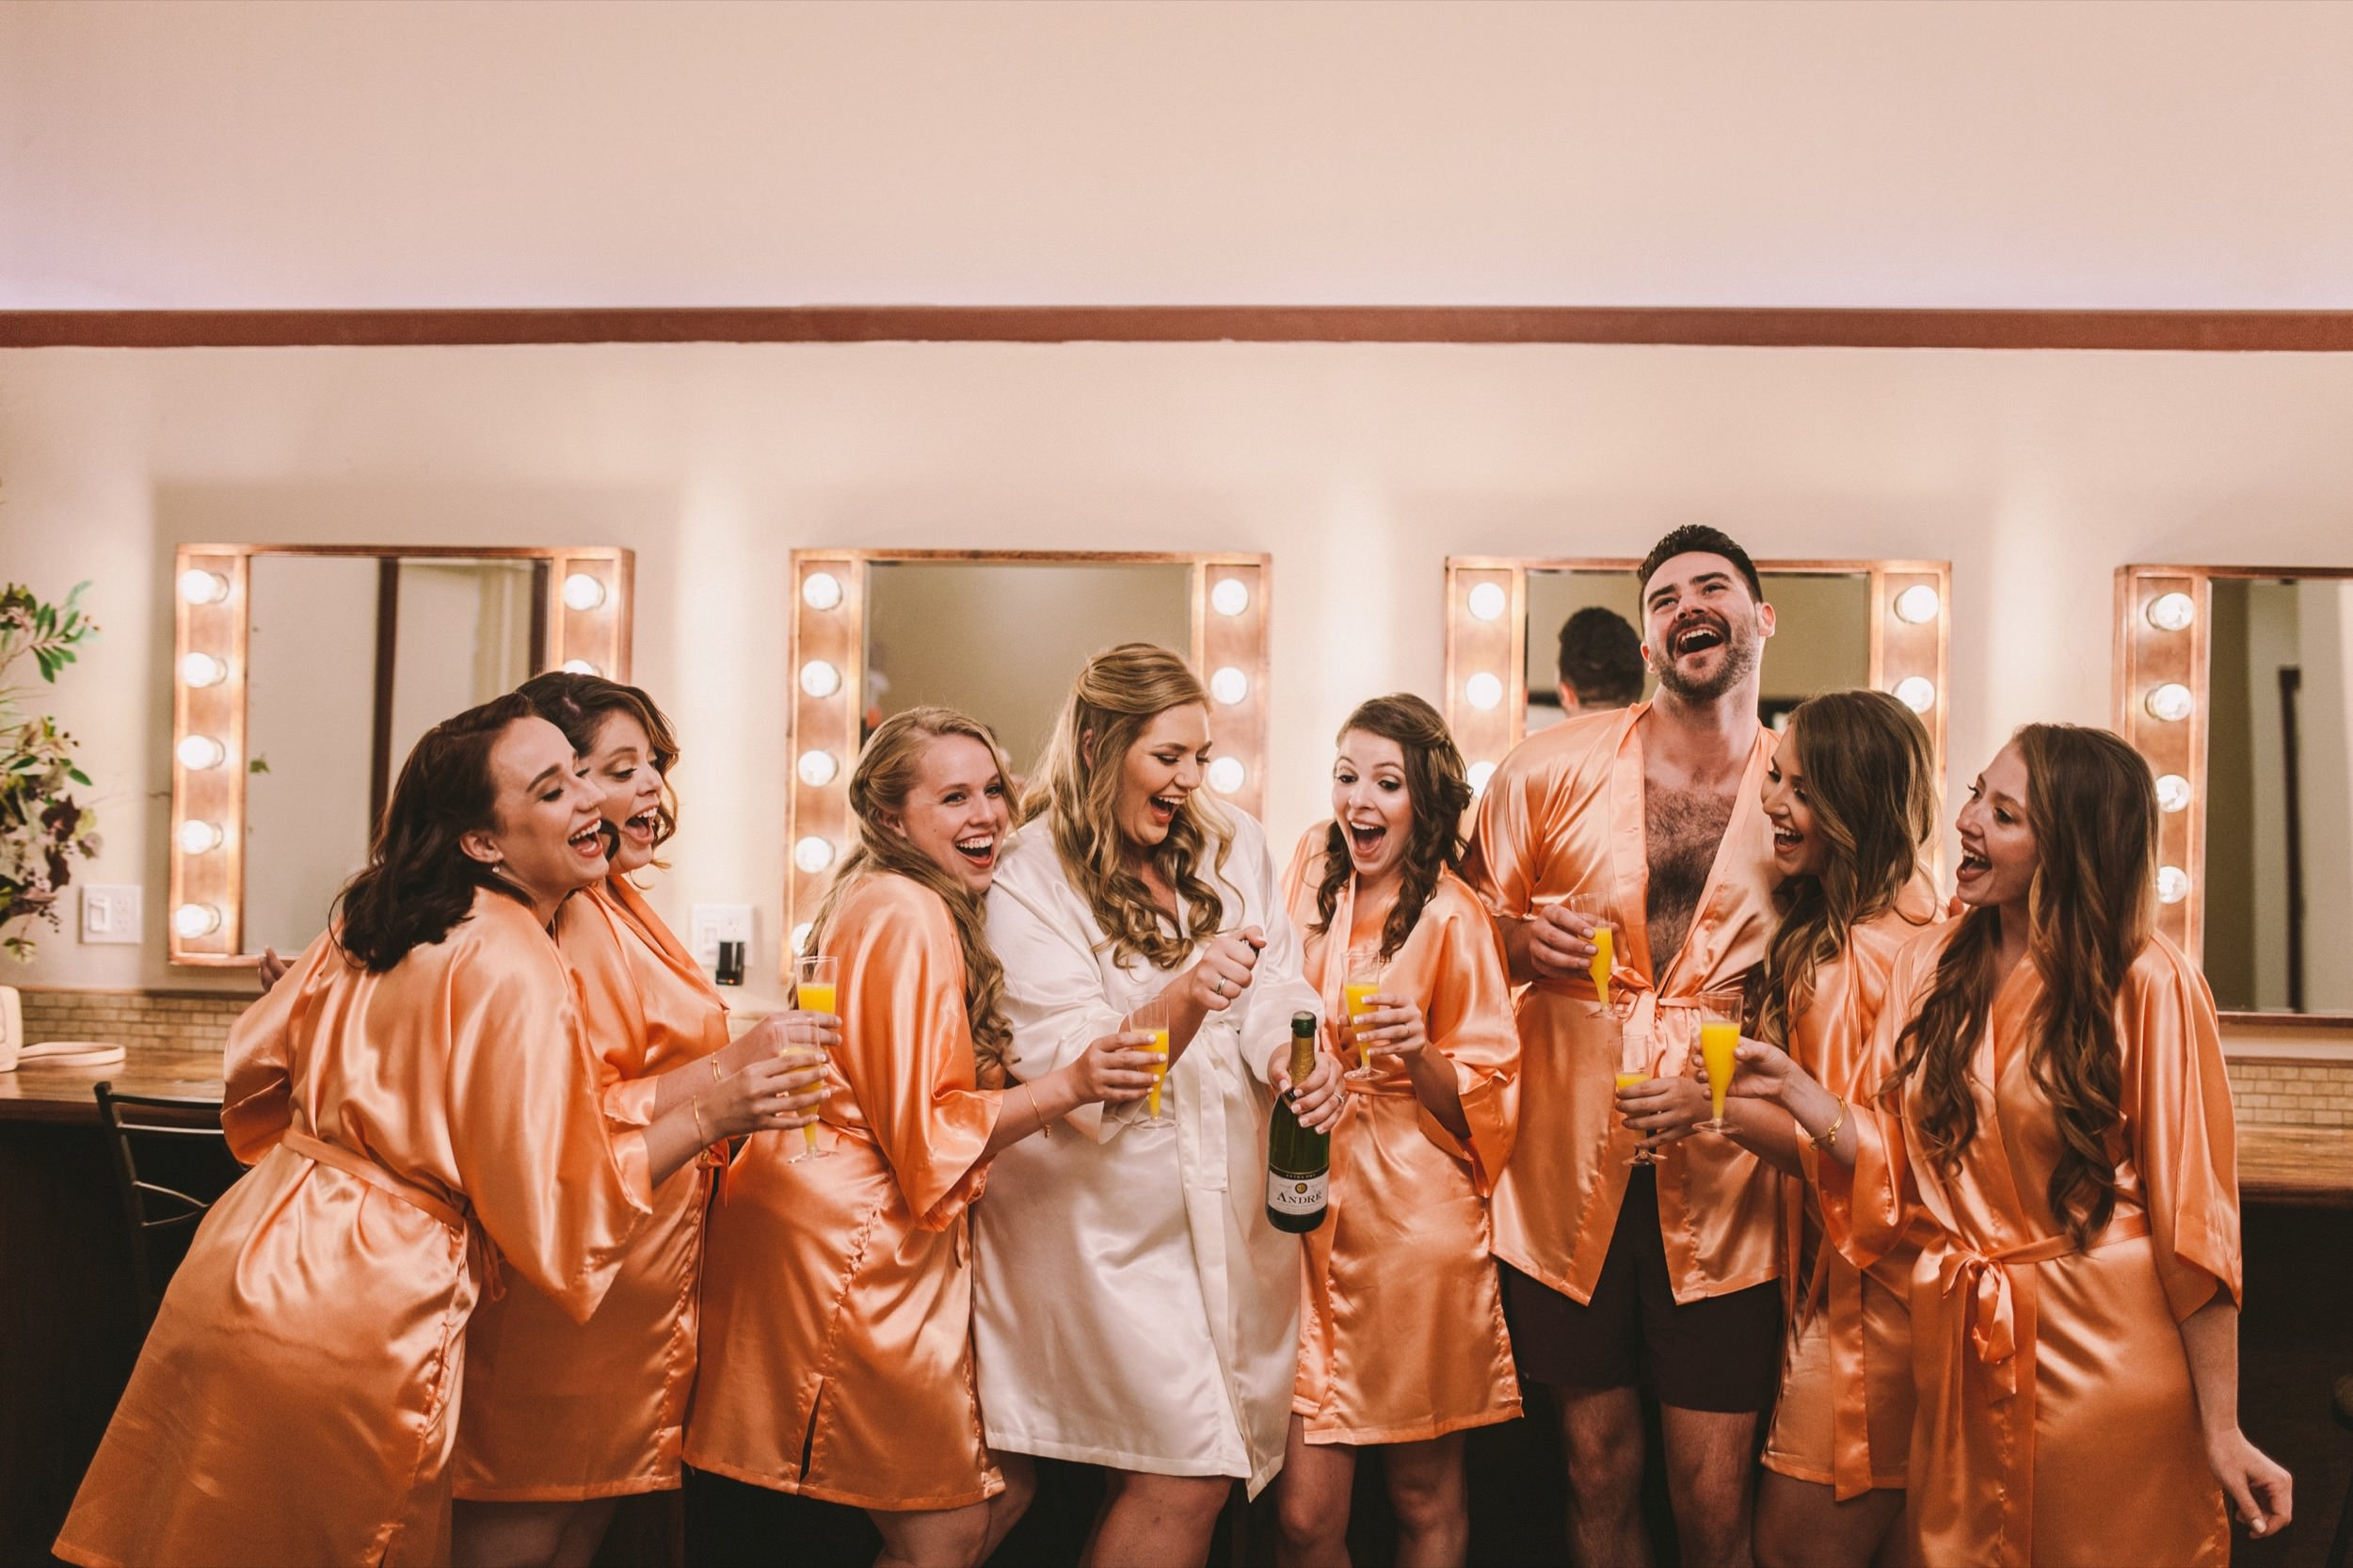 Bridesman Matching Peach/Orange Robes with Bridesmaids Wedding Prep Shots